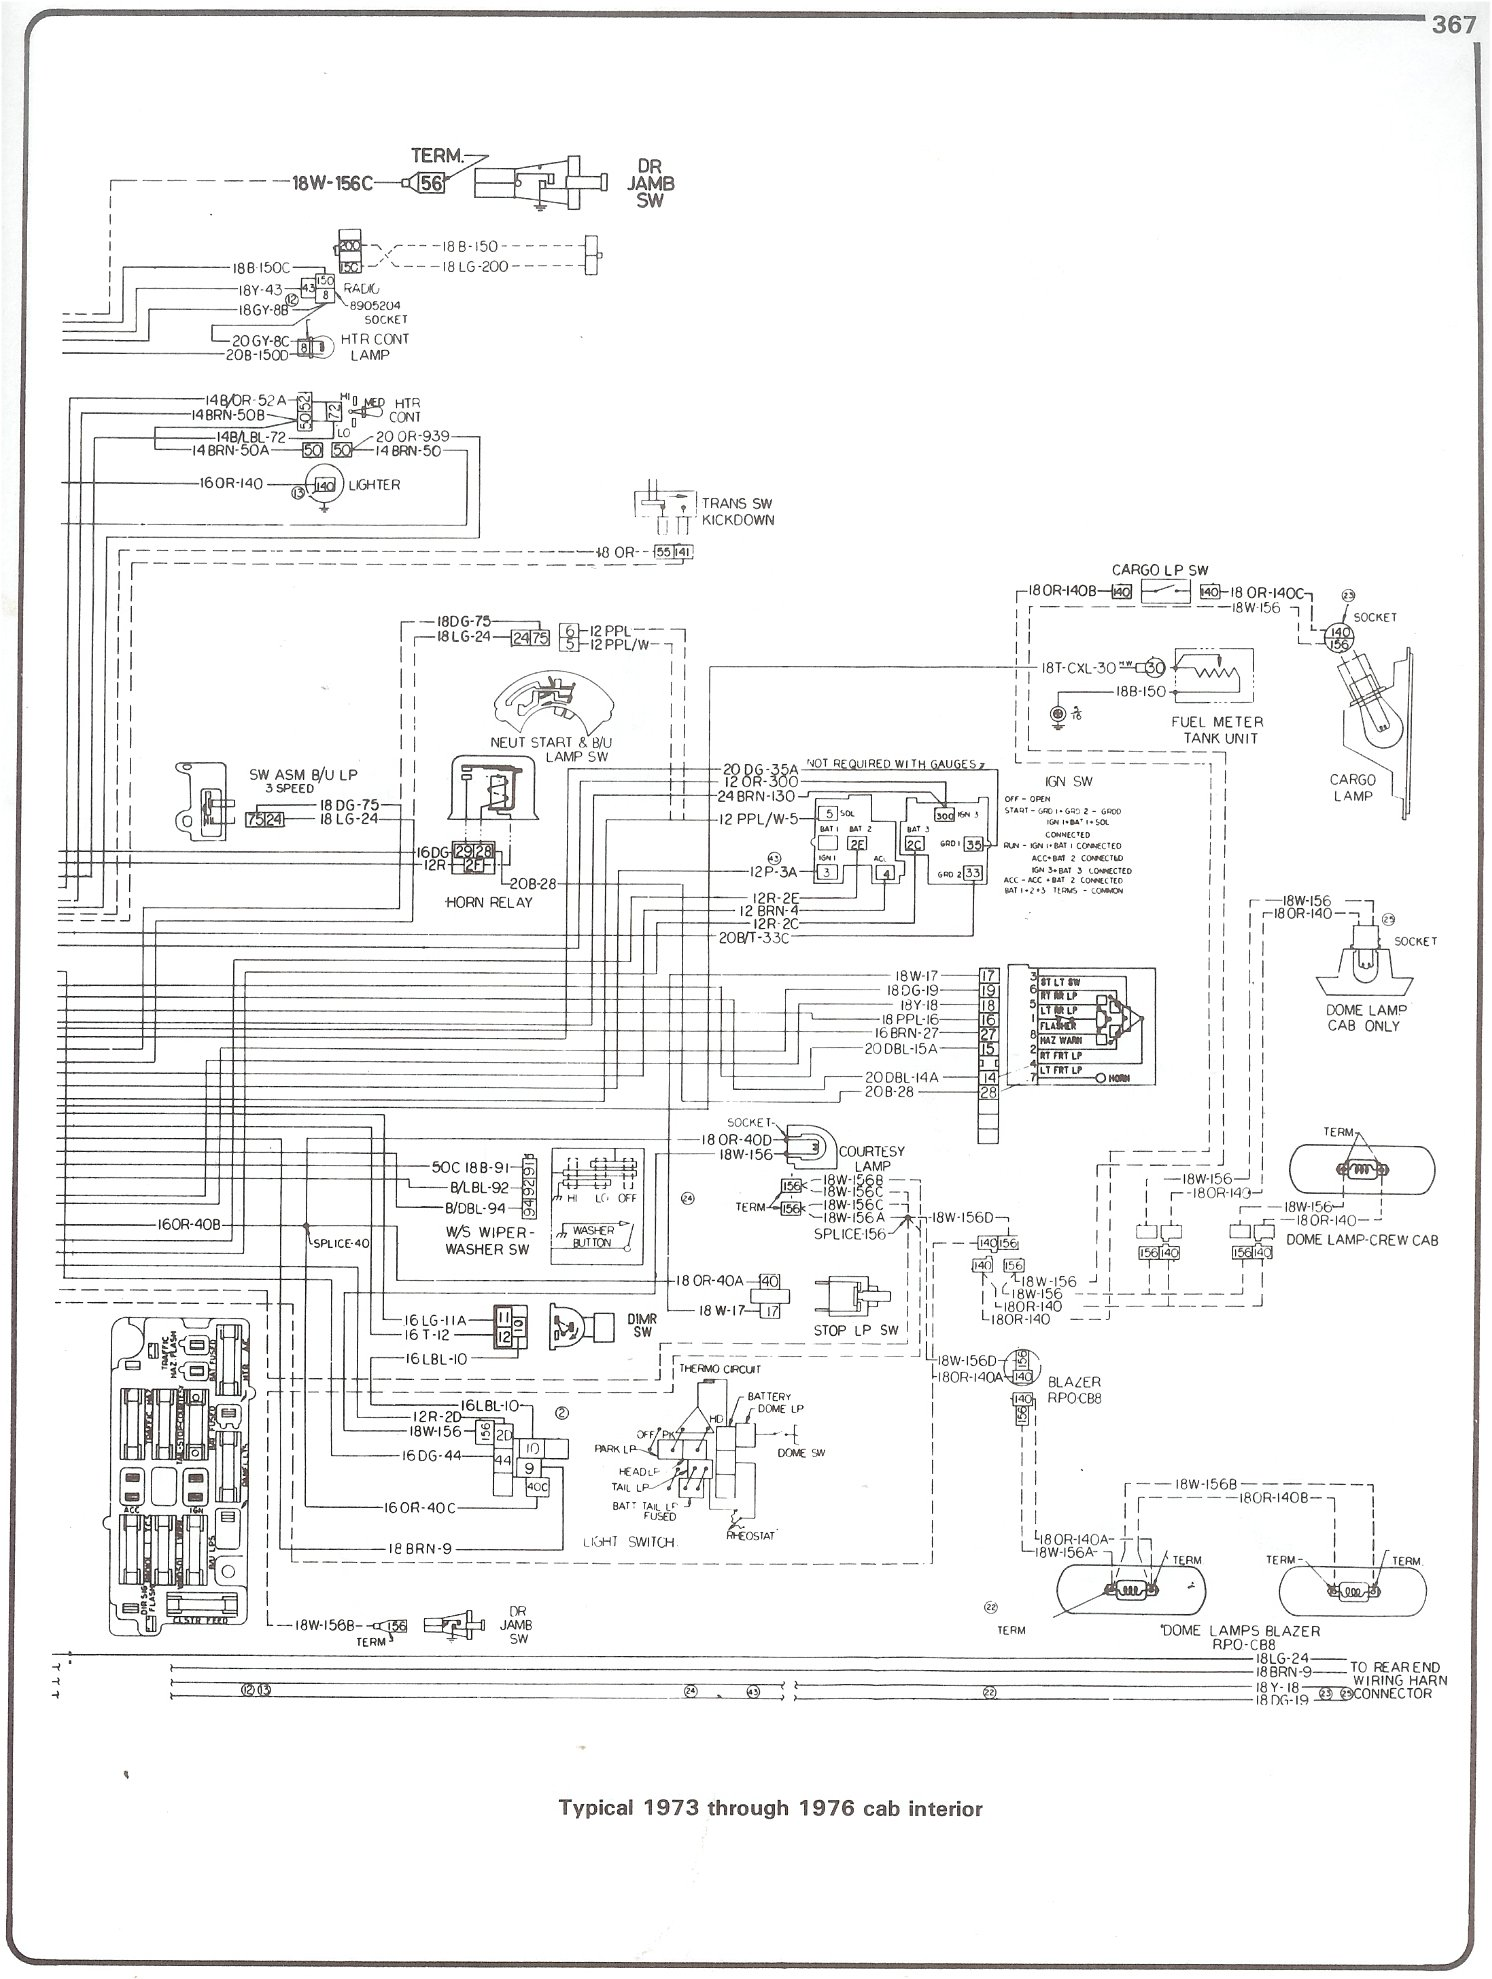 Complete 73 87 Wiring Diagrams Electric Furnace Diagram Get Free Image About 76 Cab Interior